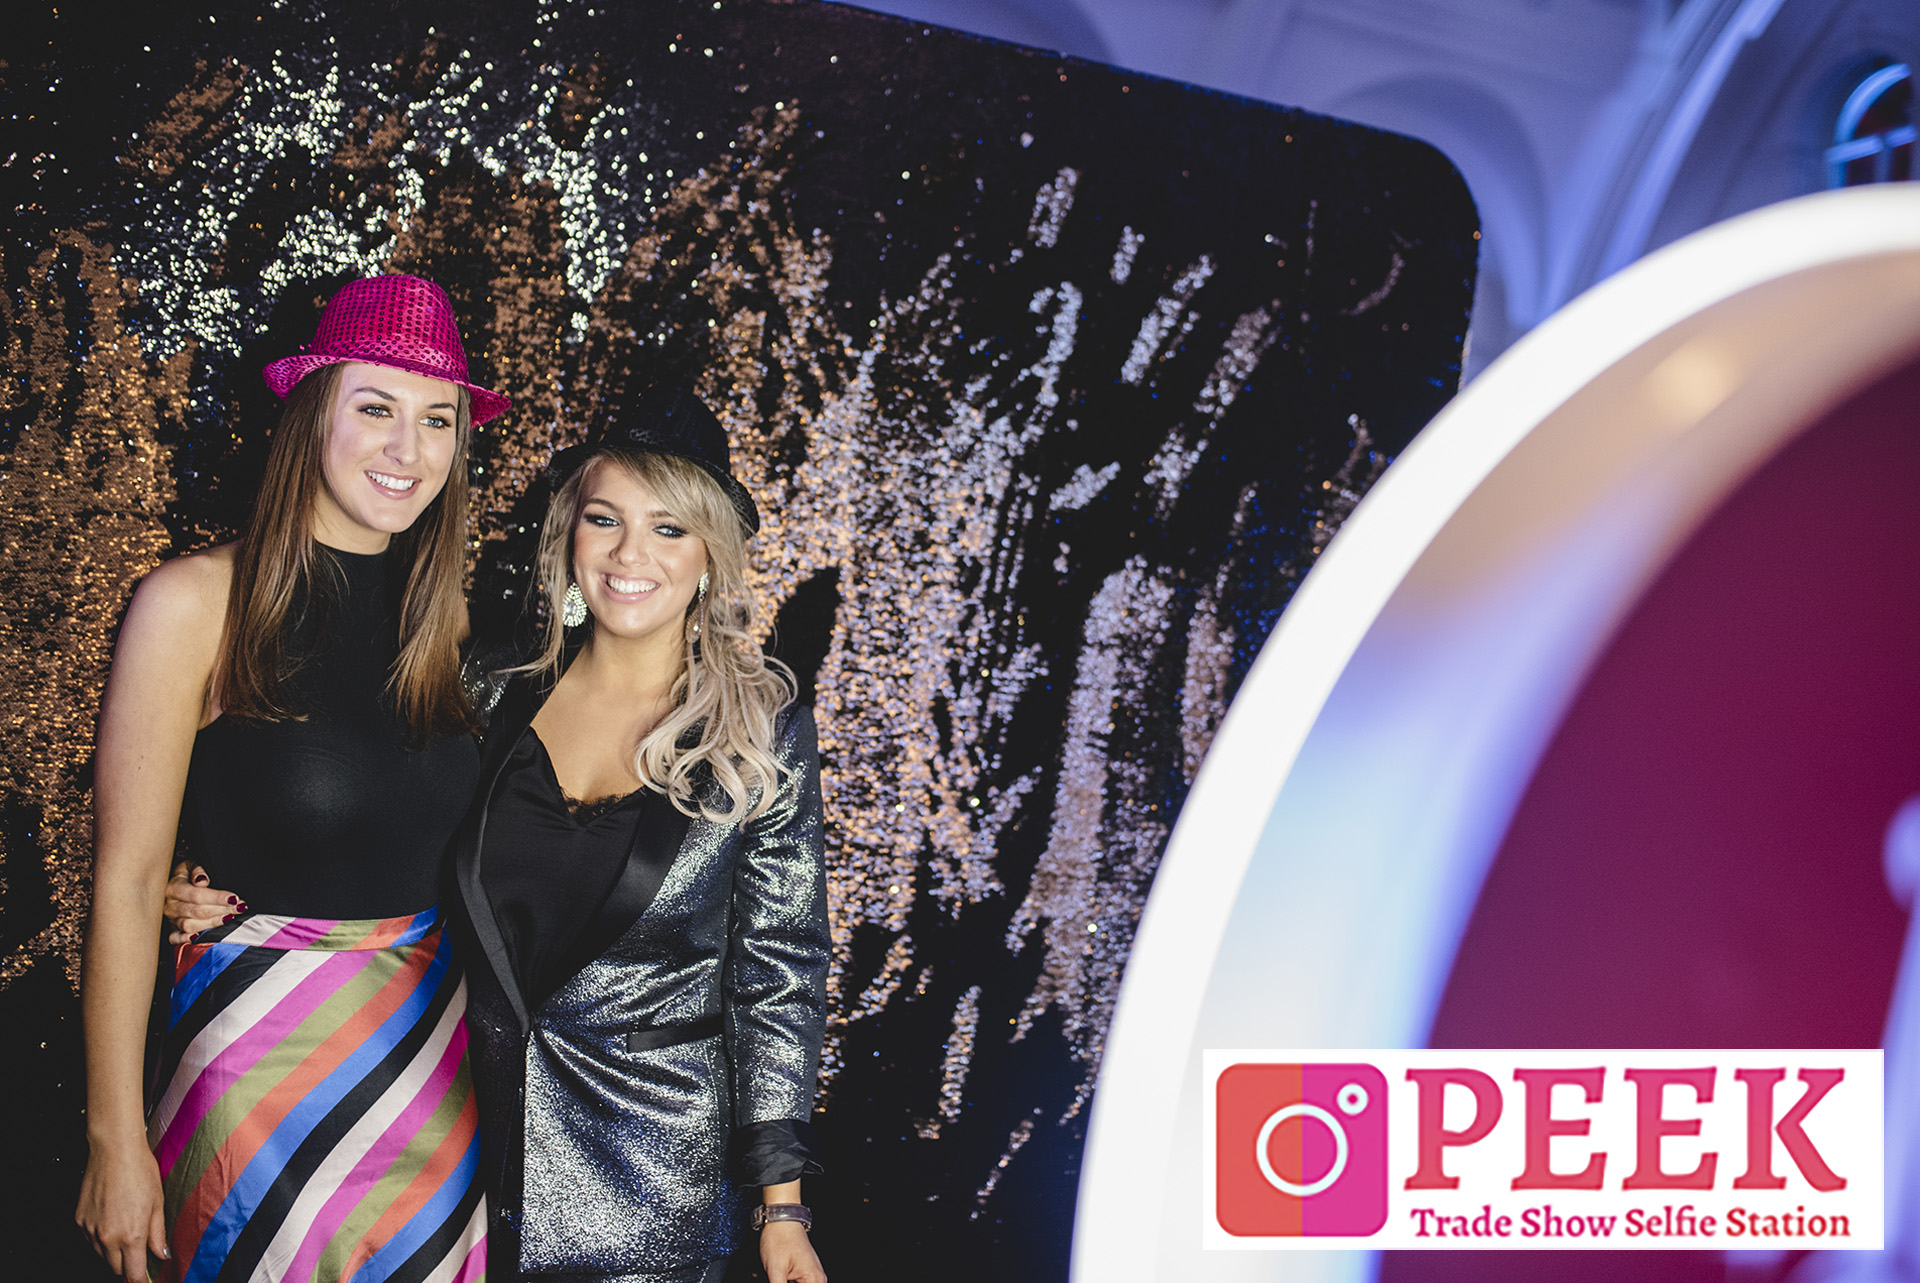 Selfie Station Photo Booth - Event Marketing Trade Show Specialty